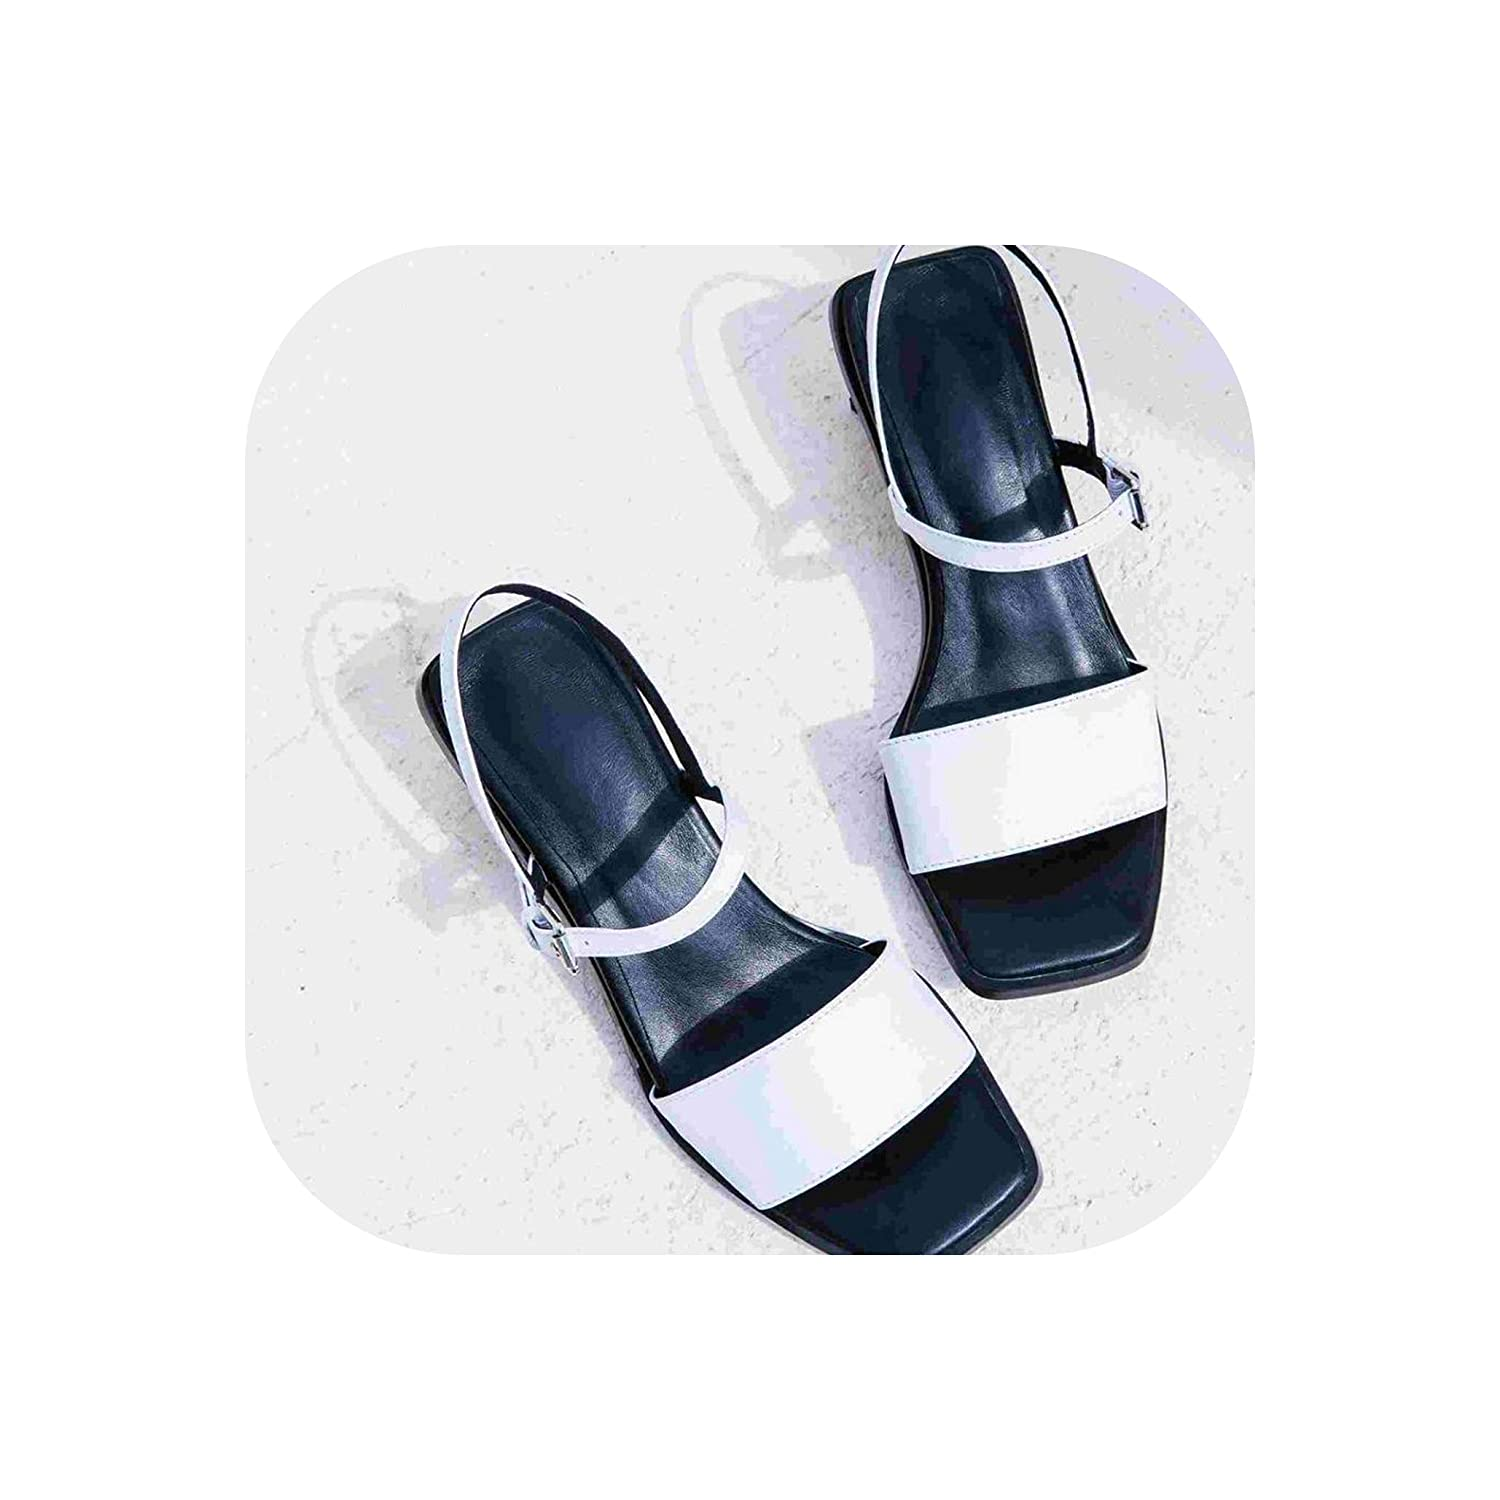 White Peep Toe High Heels Slingback Mixed colors Summer shoes Lady Concise Party Elegant Sandals